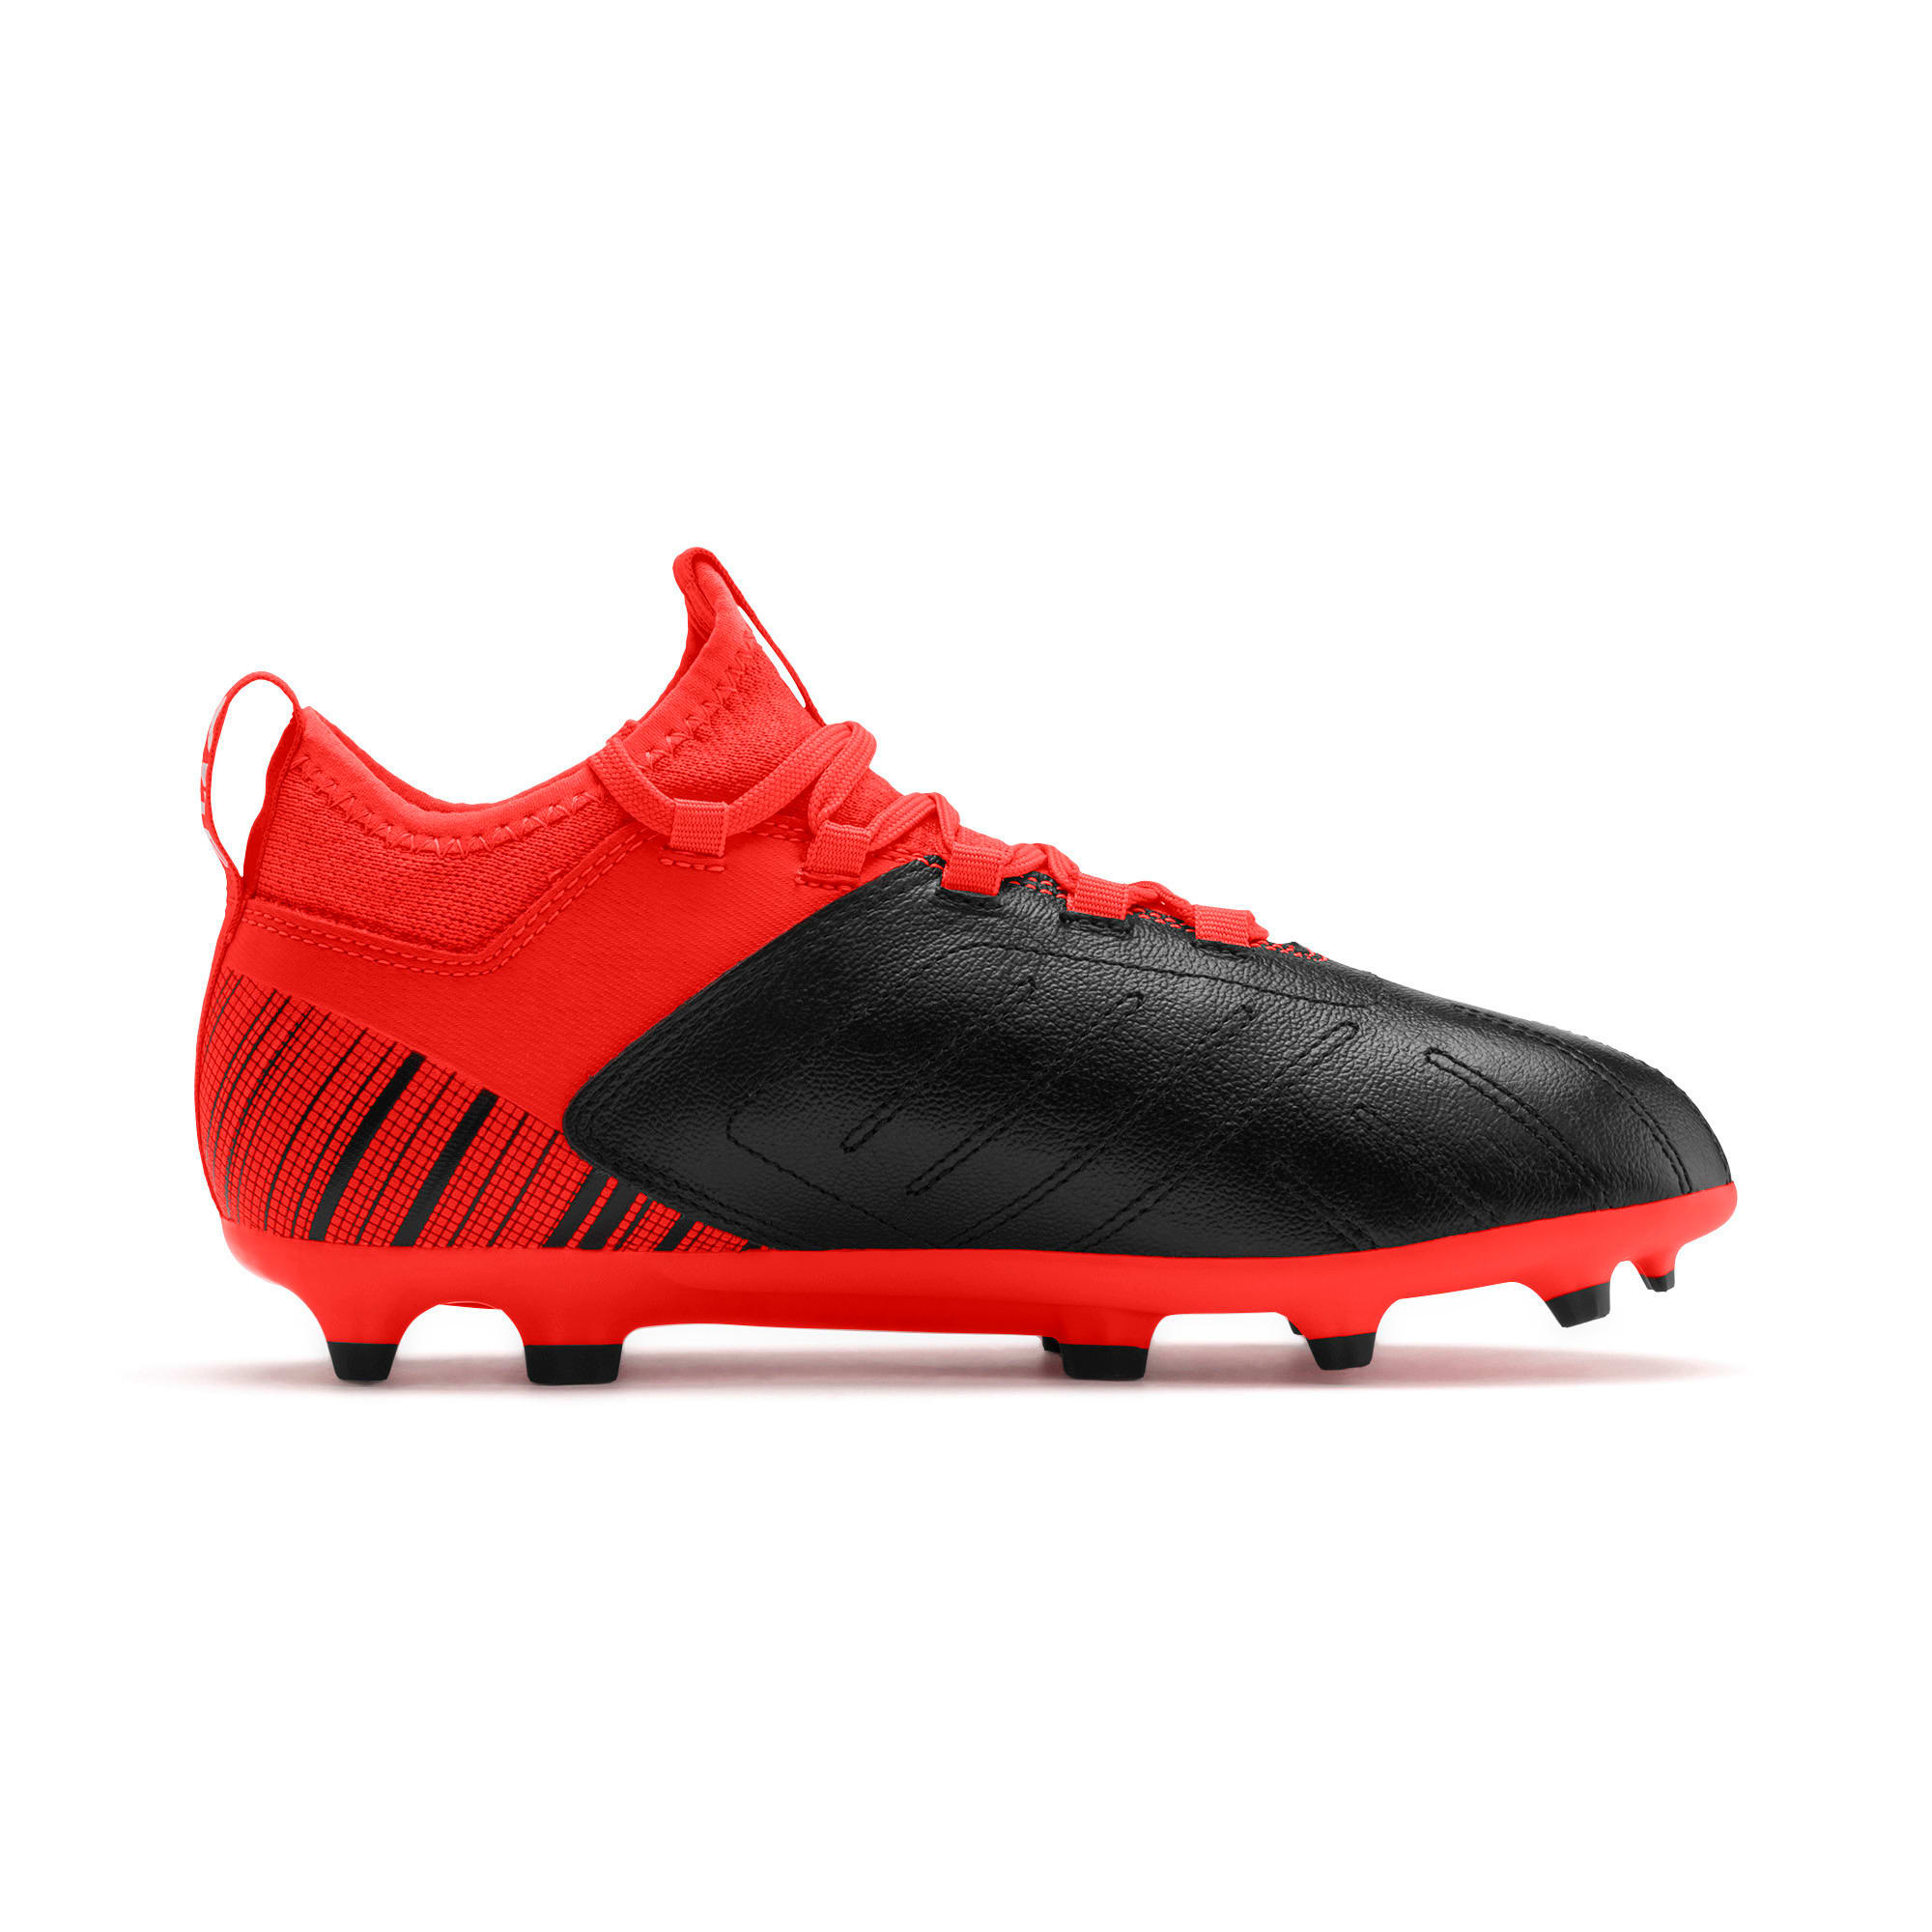 Thumbnail 5 of PUMA ONE 5.4 Youth Football Boots, Black-Nrgy Red-Aged Silver, medium